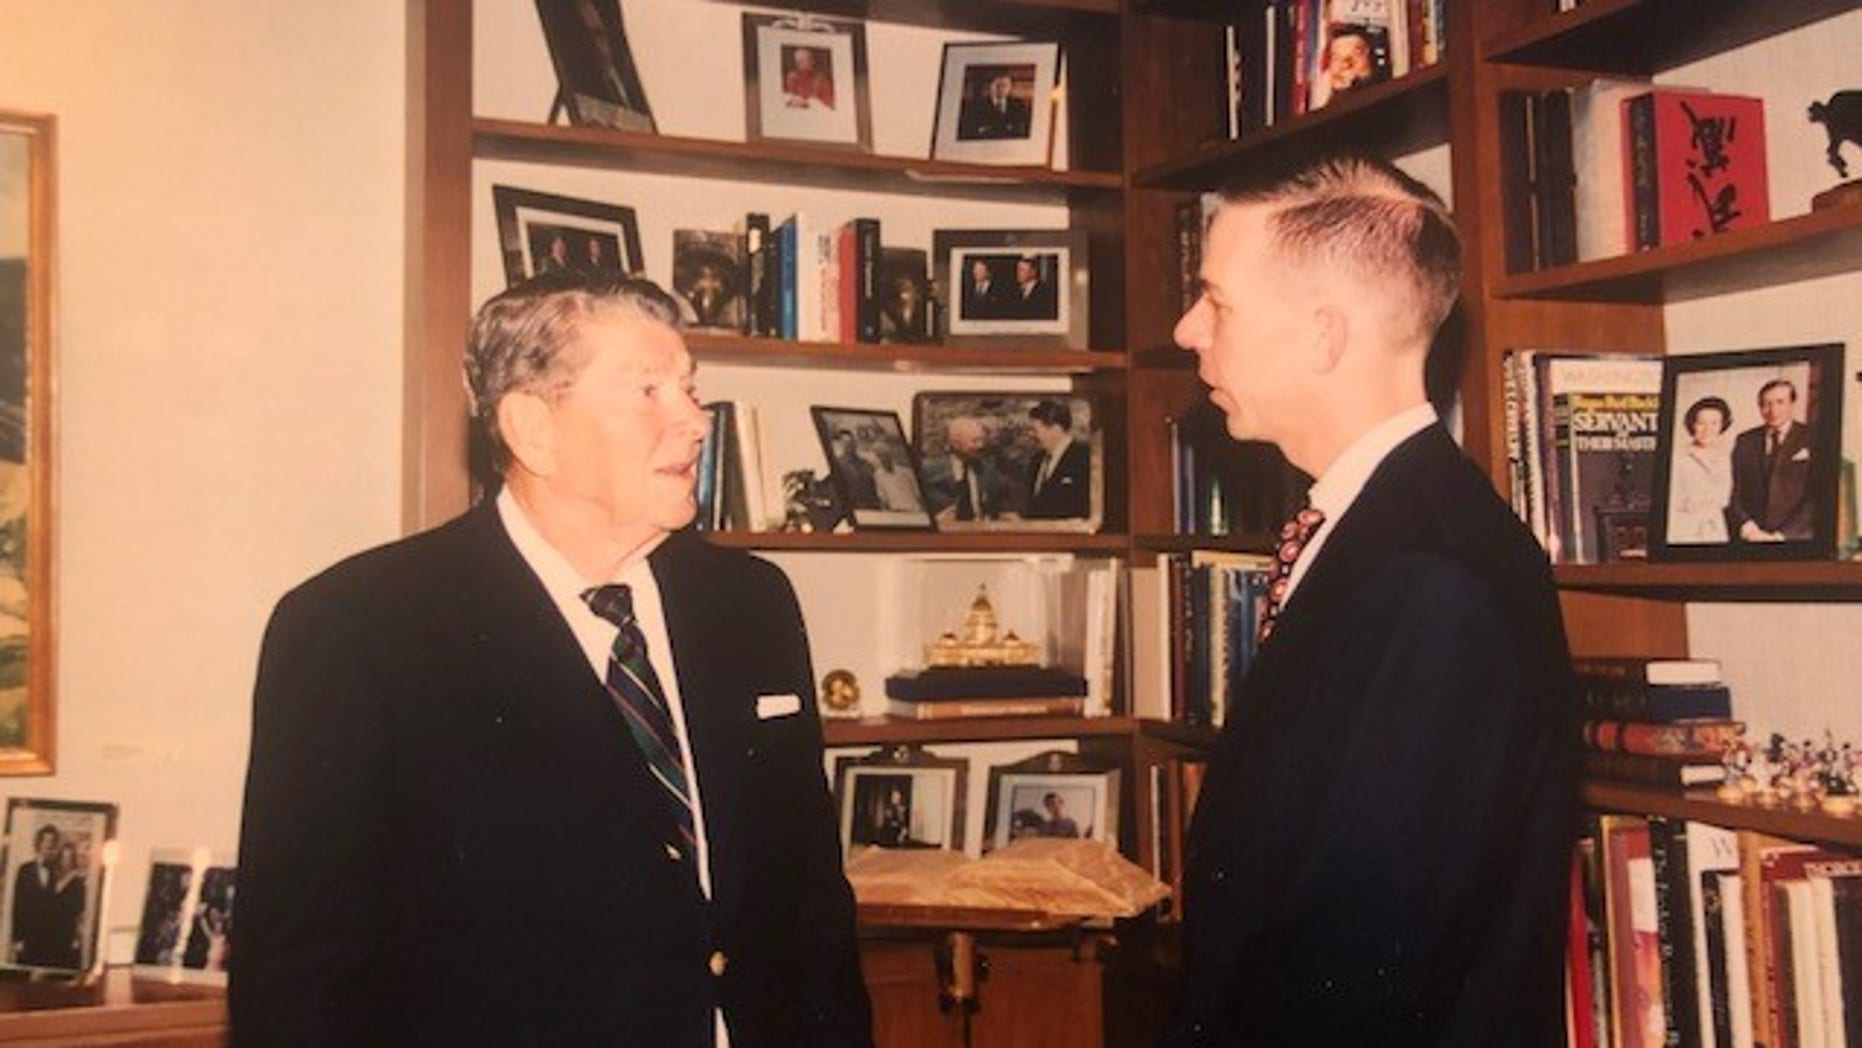 The author meets former President Ronald Reagan, 1997, Los Angeles, Calif.